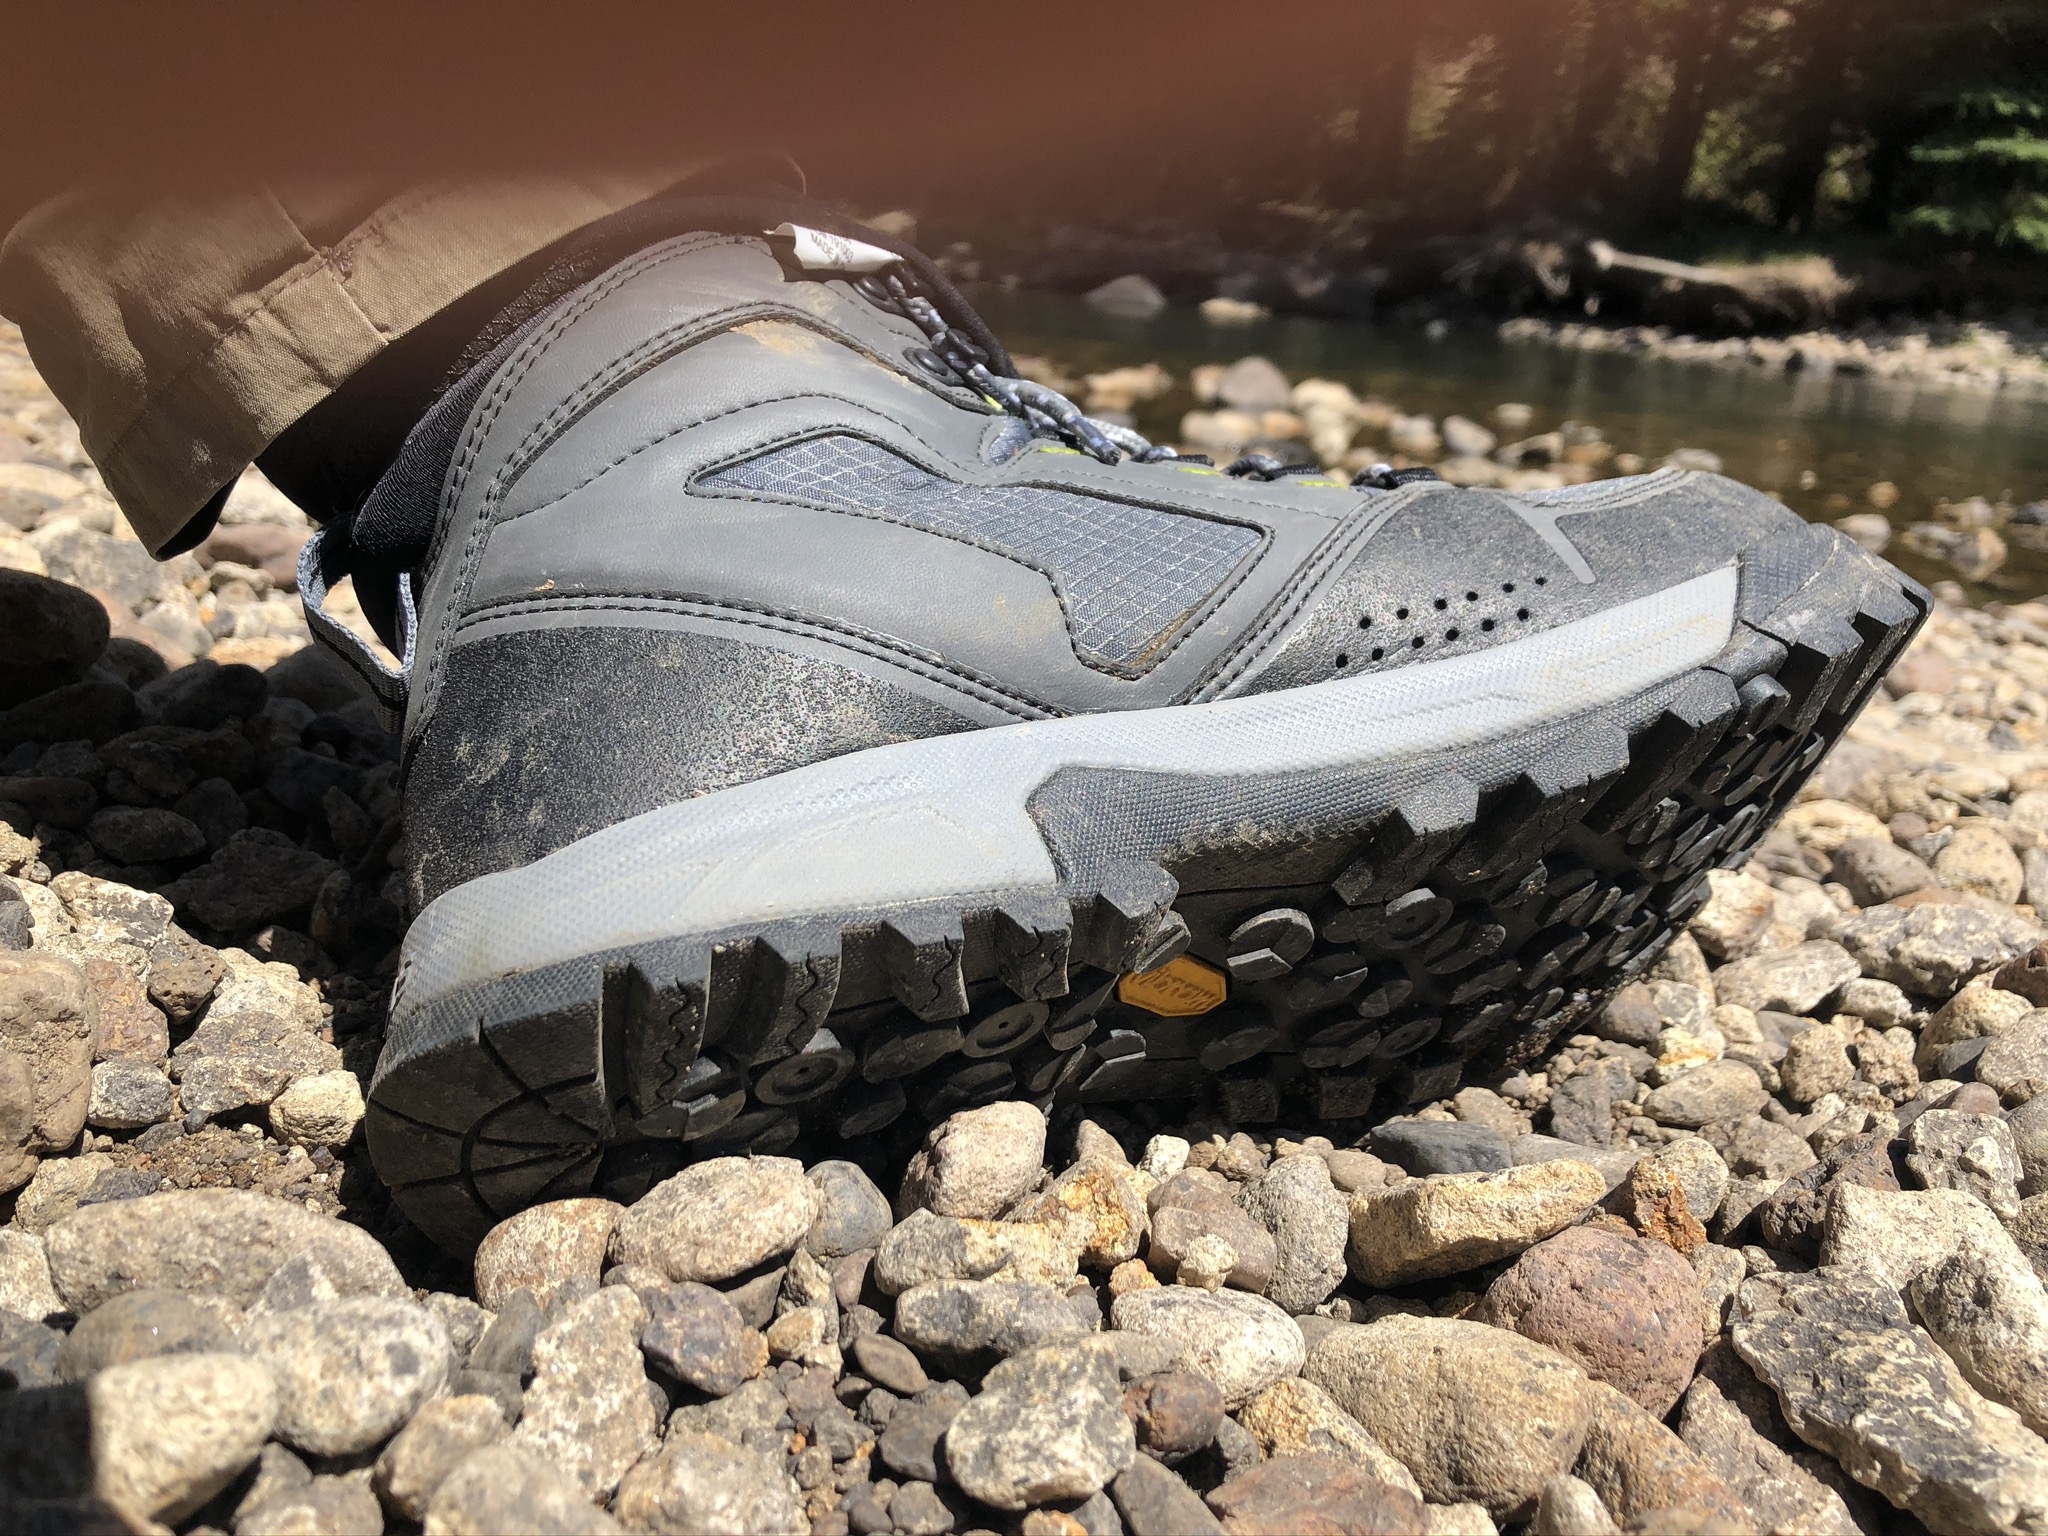 Orvis Ultralight Wading boots